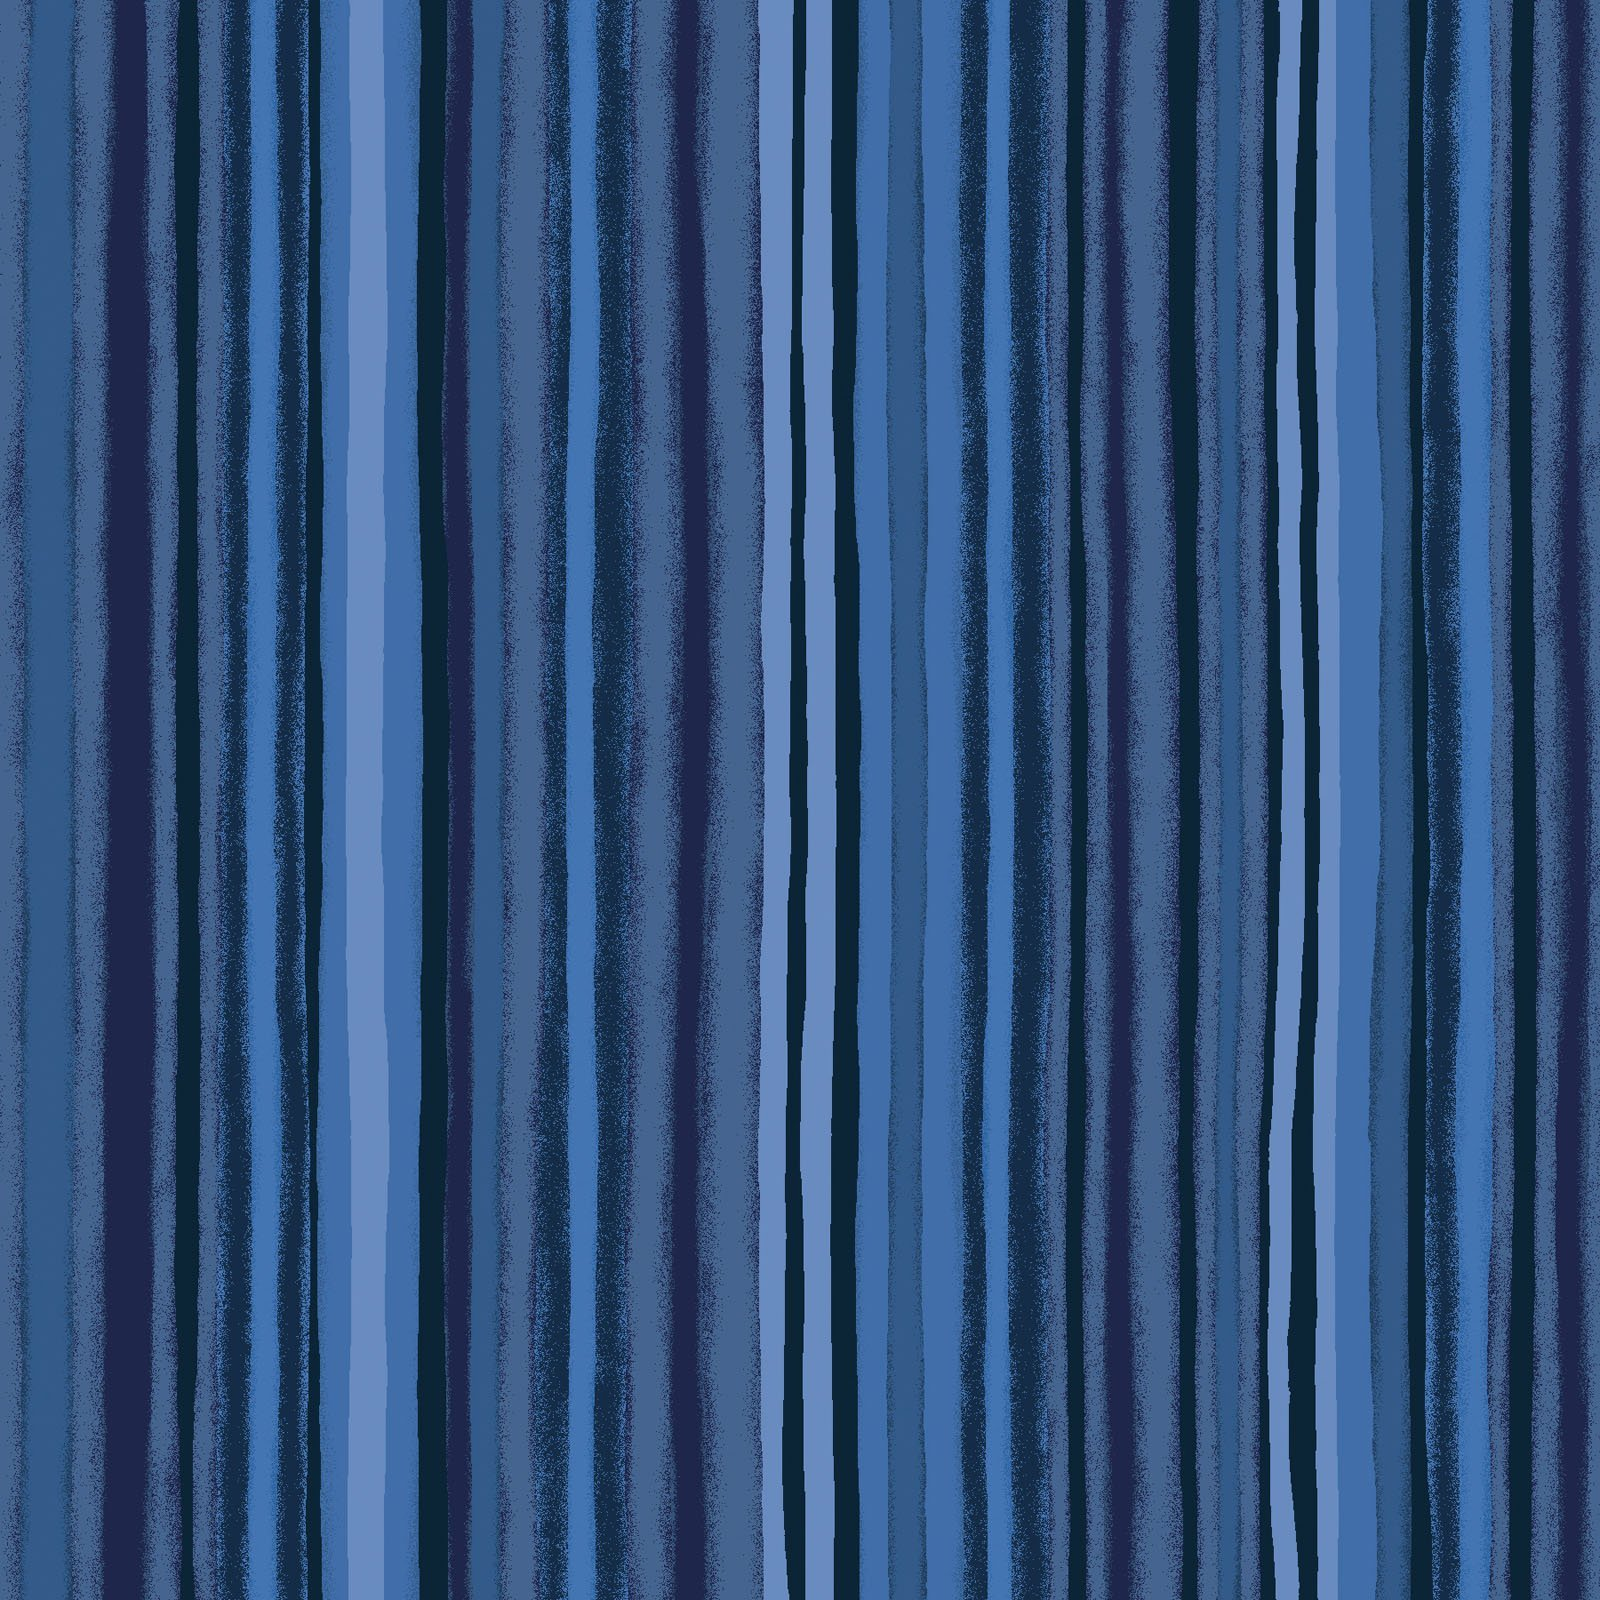 EESC-2511 N - SILVER JUBILEE BY MAYWOOD STUDIO STRIPE NAVY - AVAILABLE TO ORDER